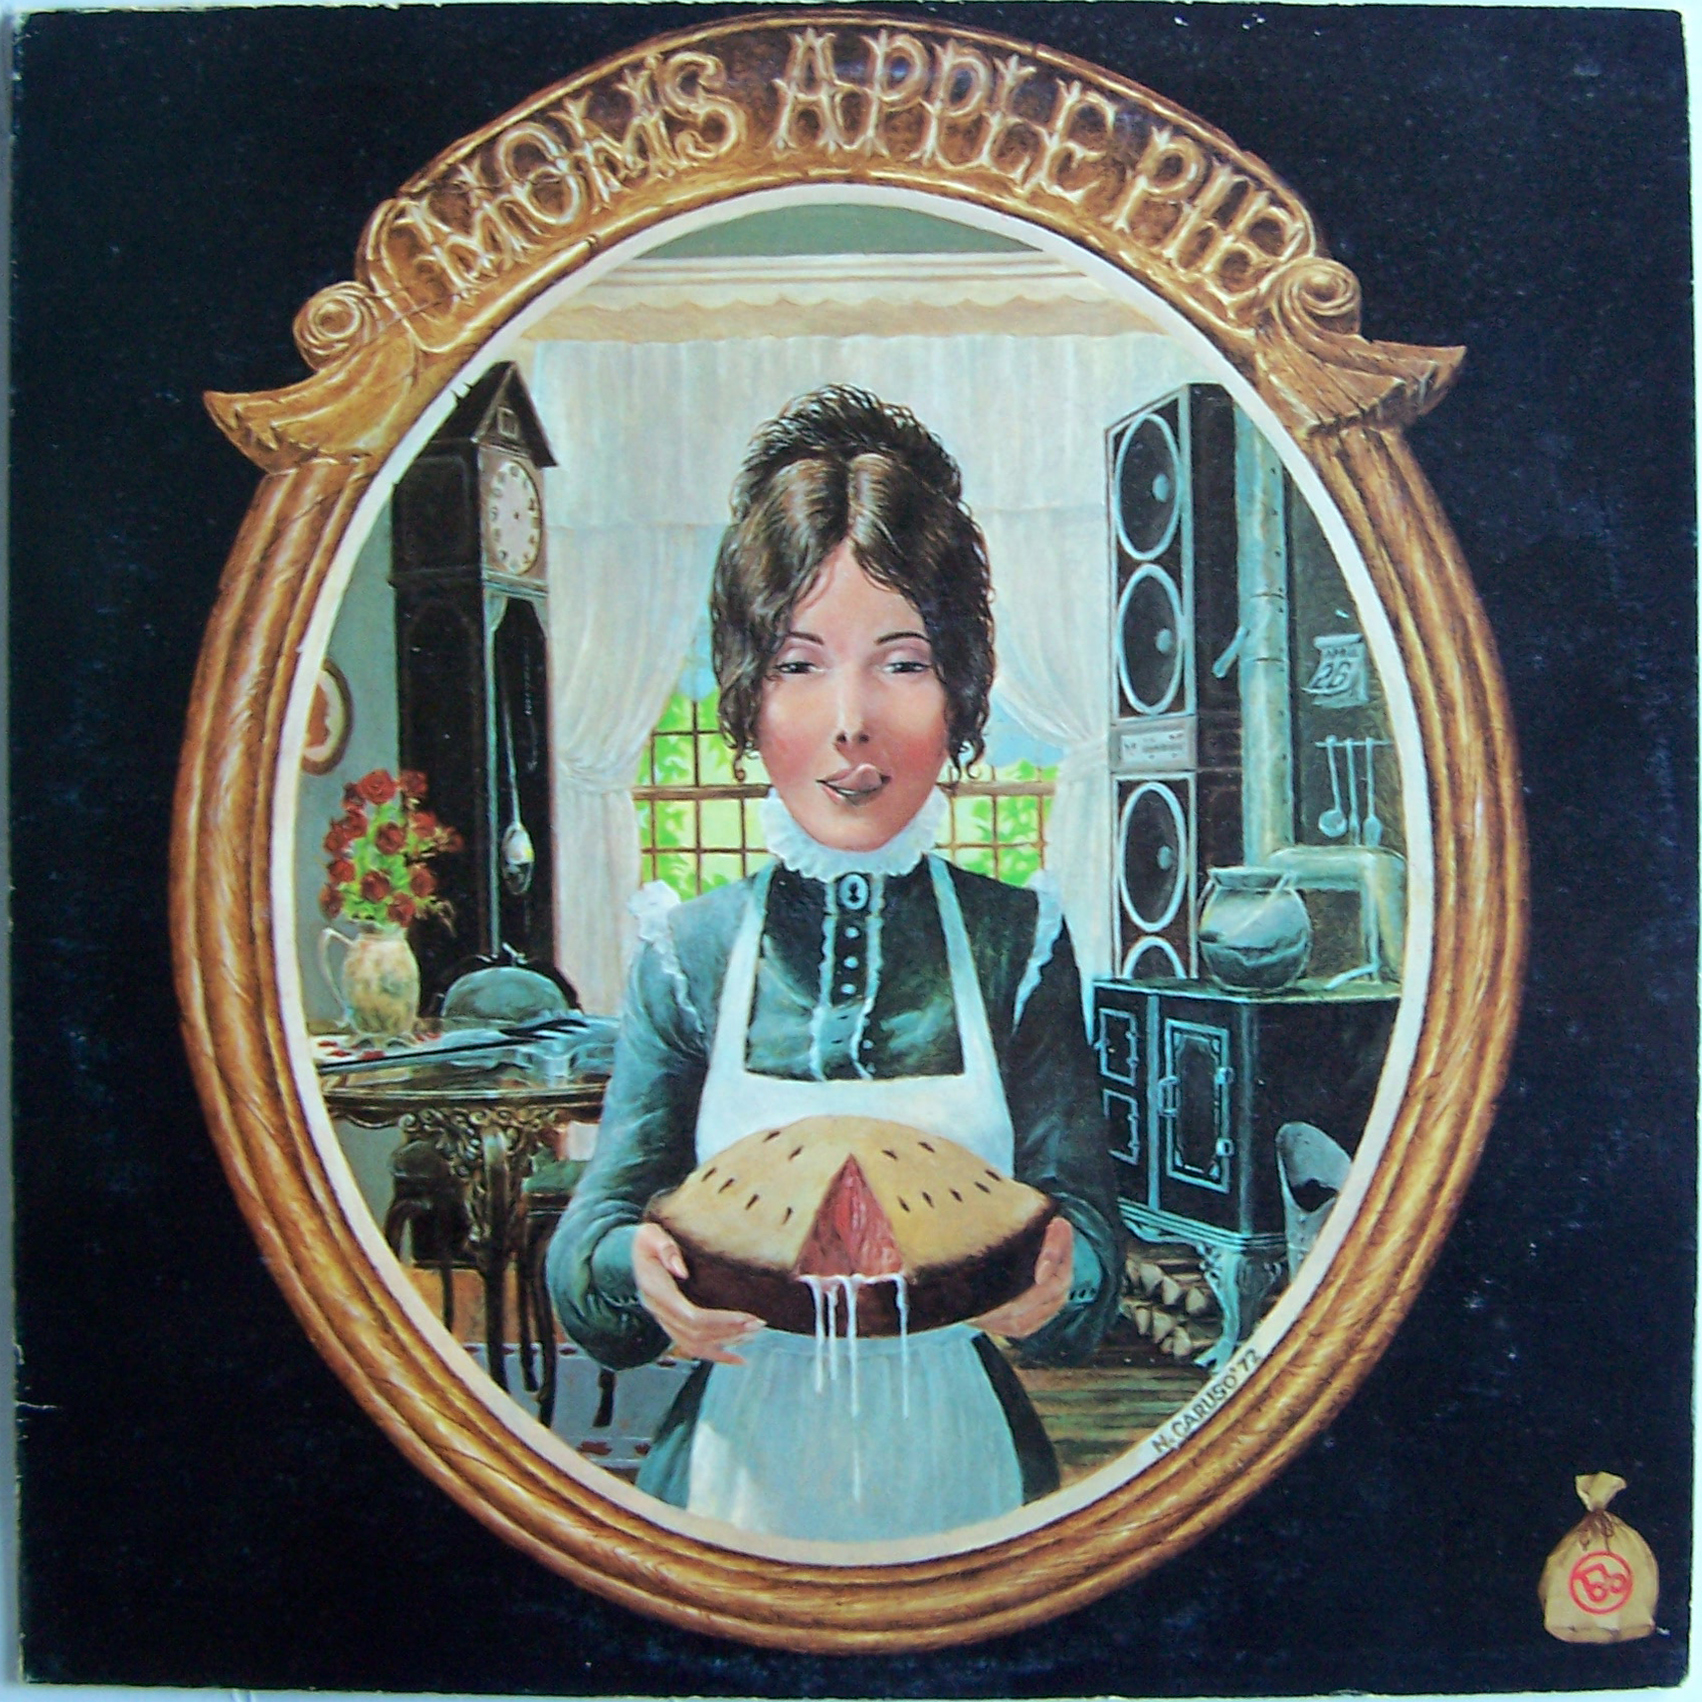 ... censored album covers mom s apple pie mom s apple pie 1972 6 comments